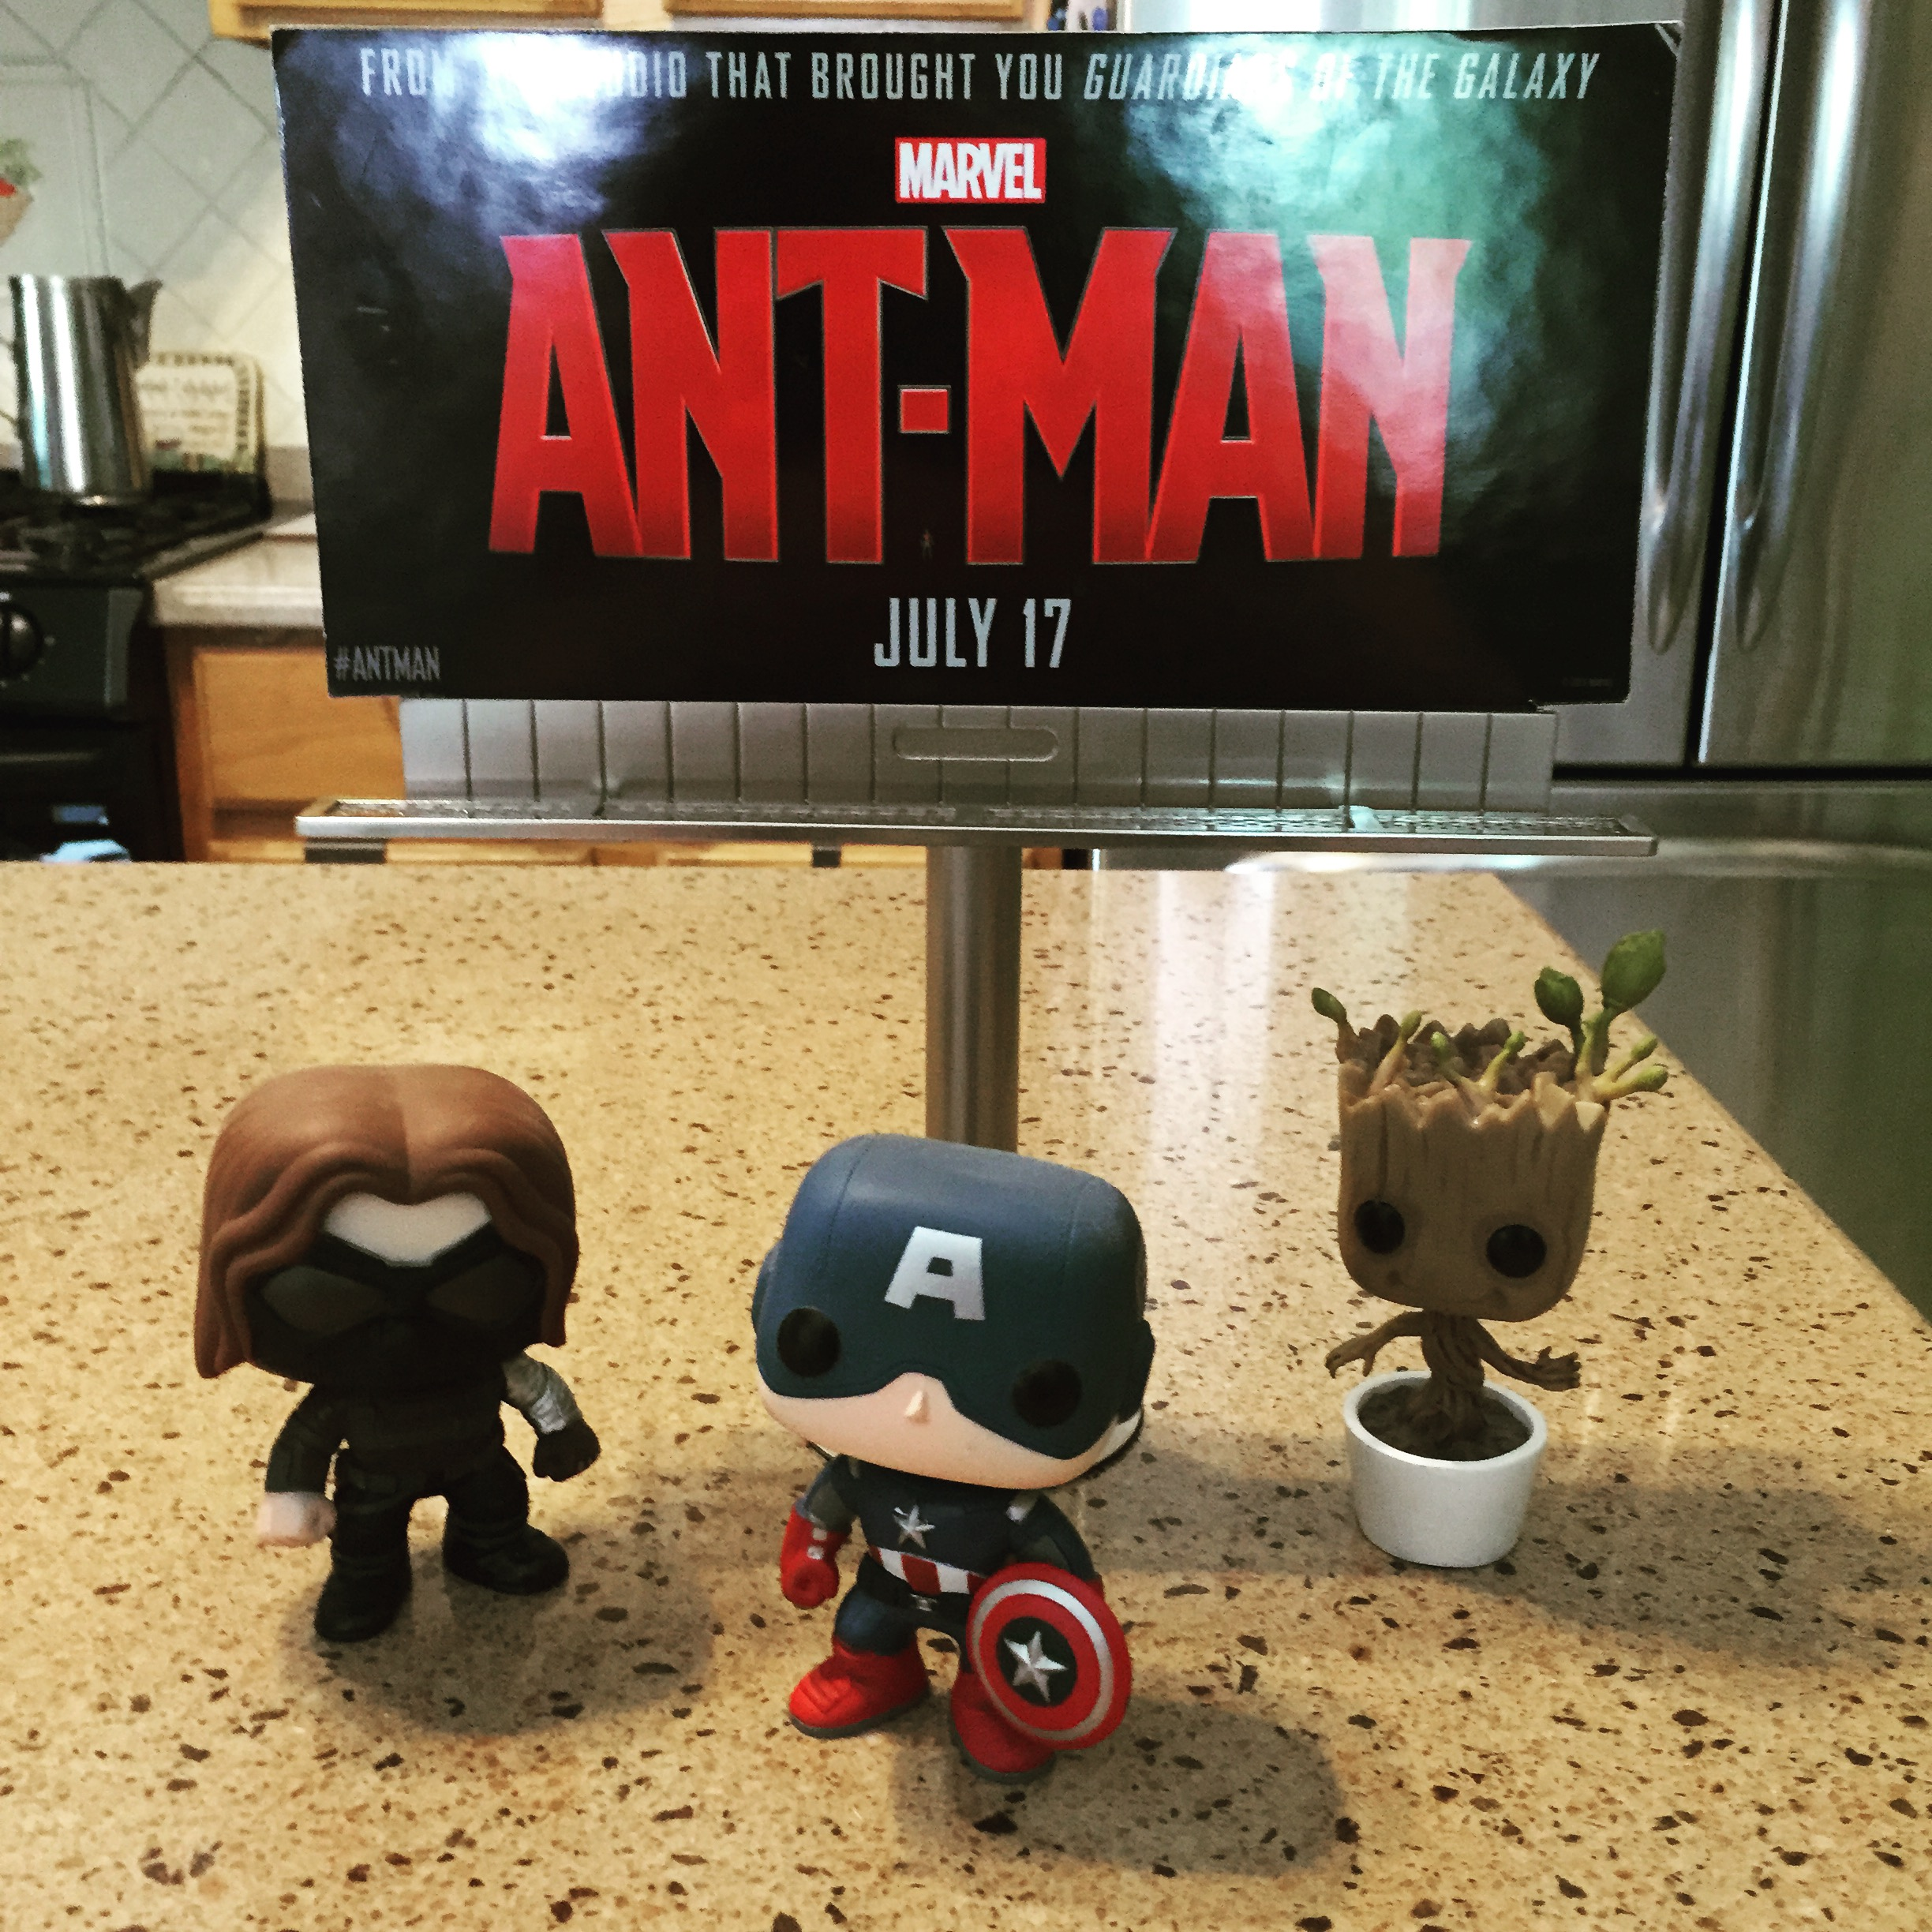 ant-man billboard